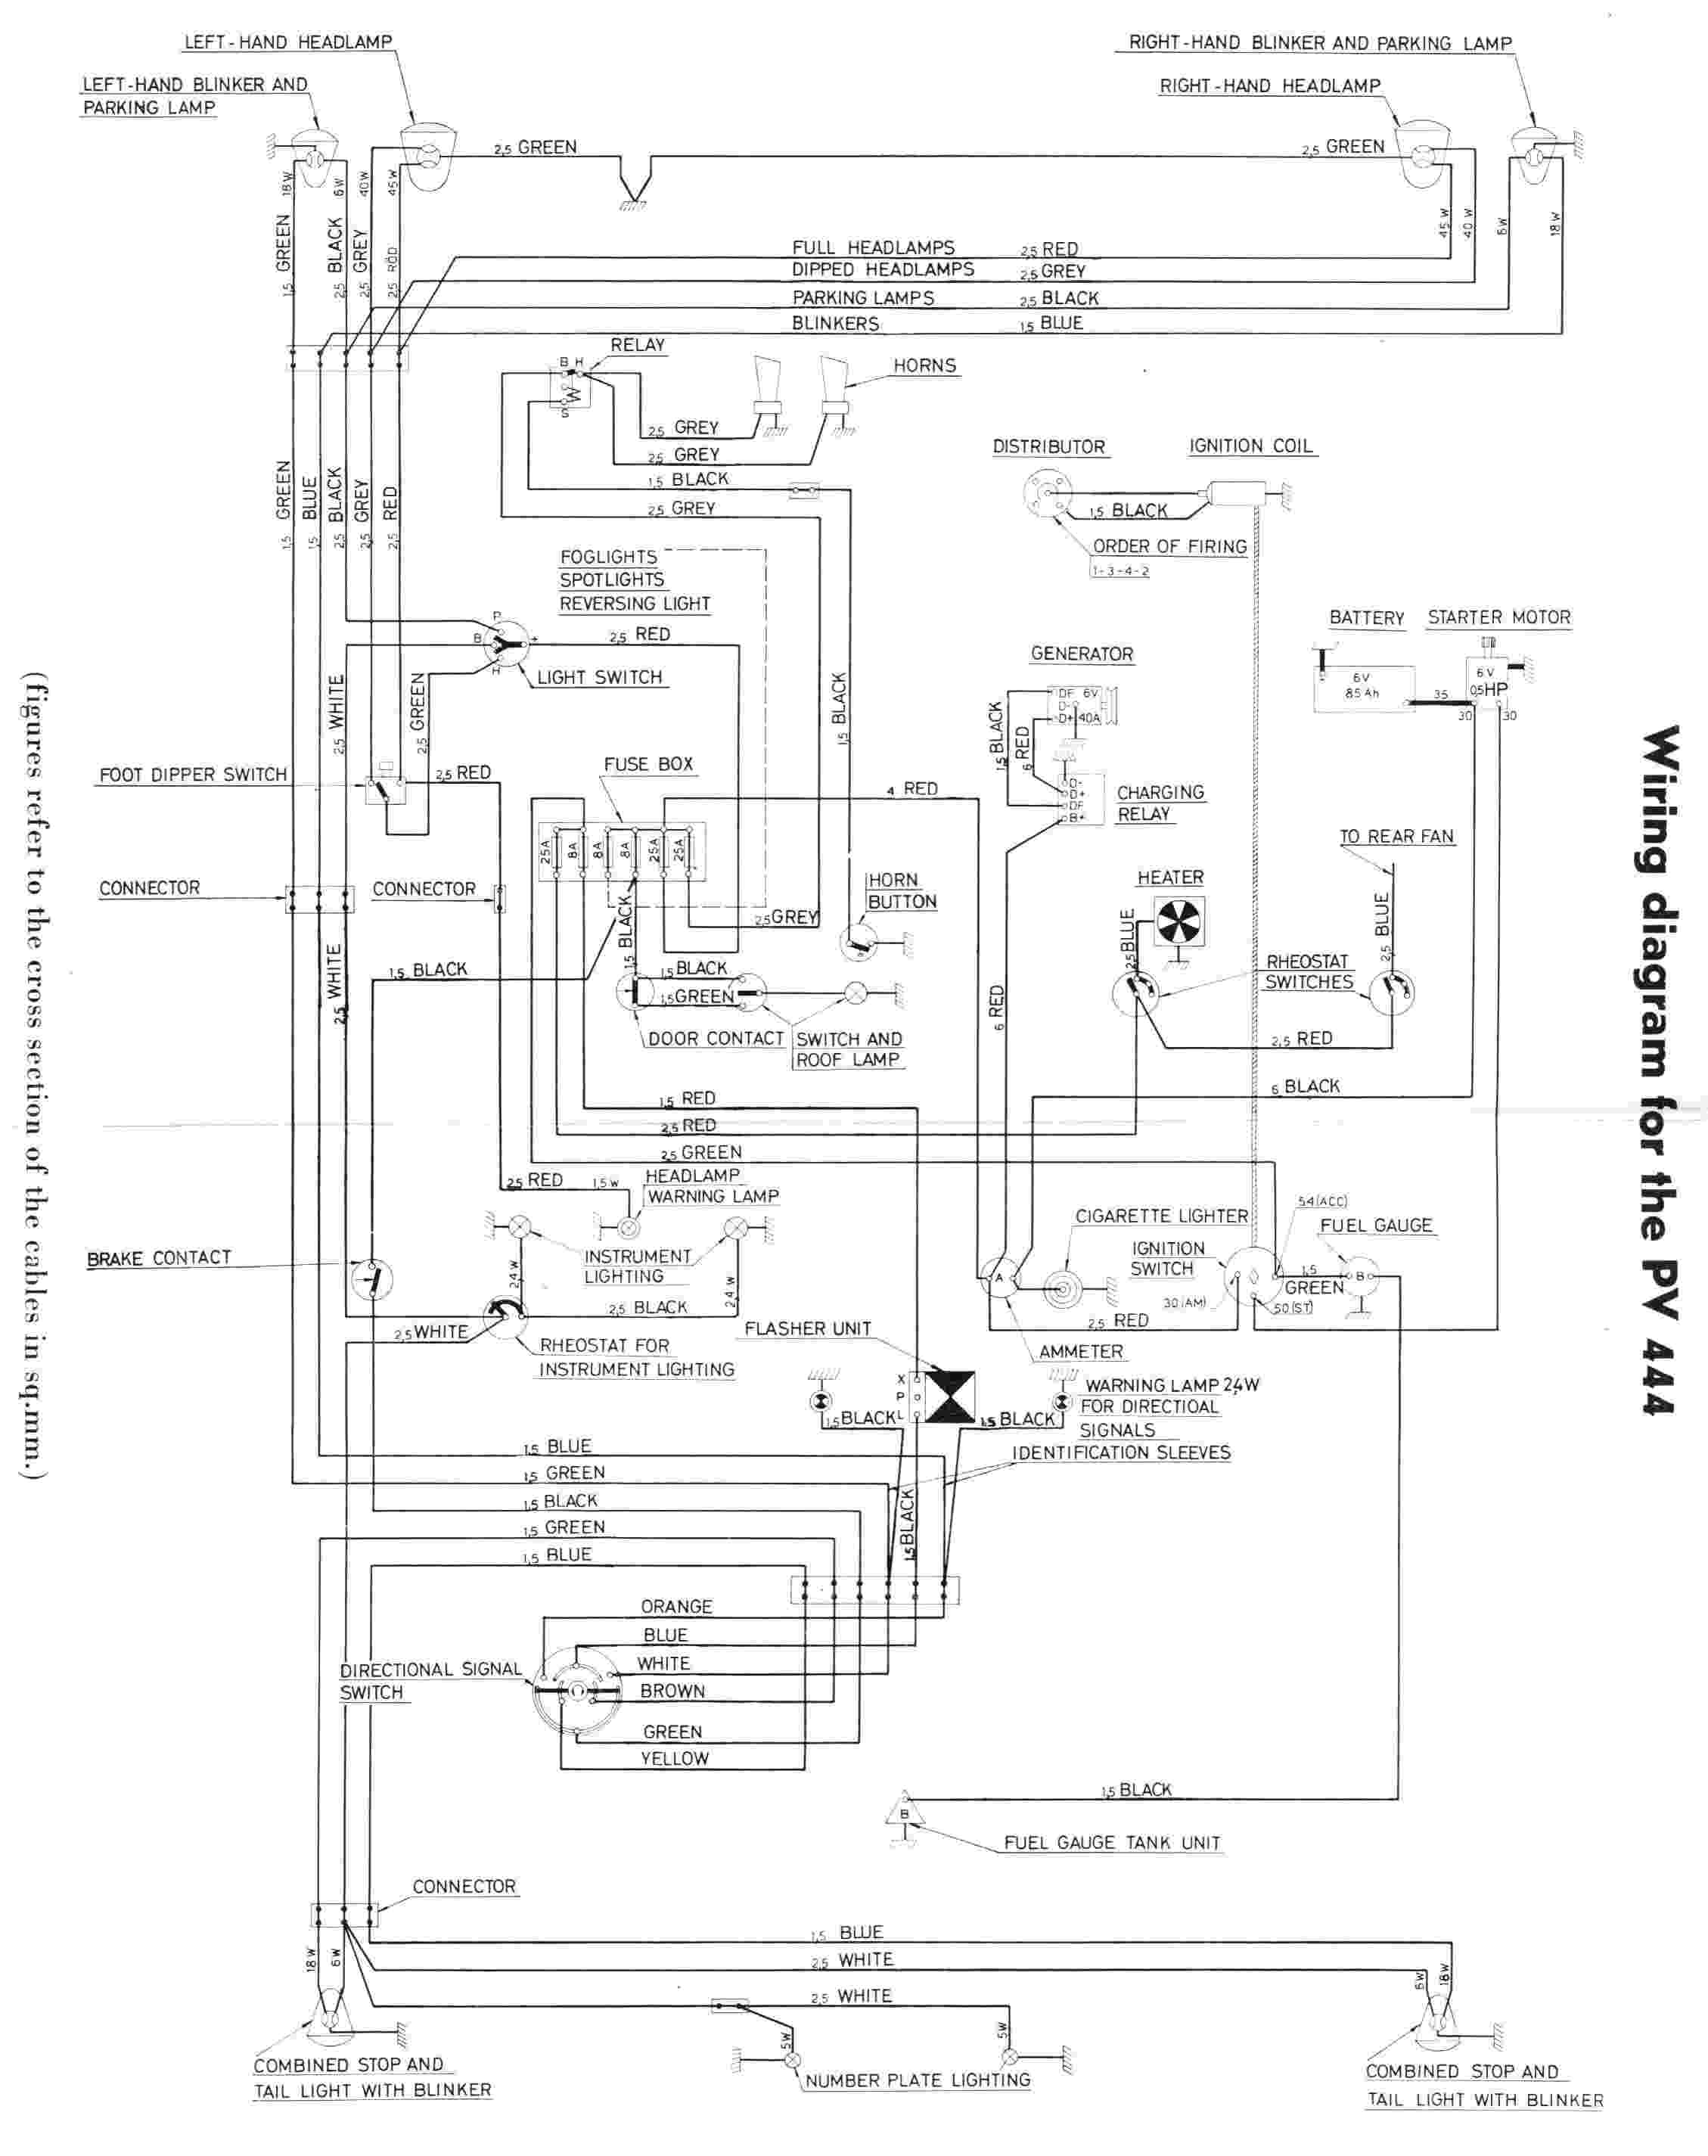 hight resolution of volvo truck electrical diagram trusted wiring diagram online volvo transmission schematic 1993 volvo wiring schematic battery